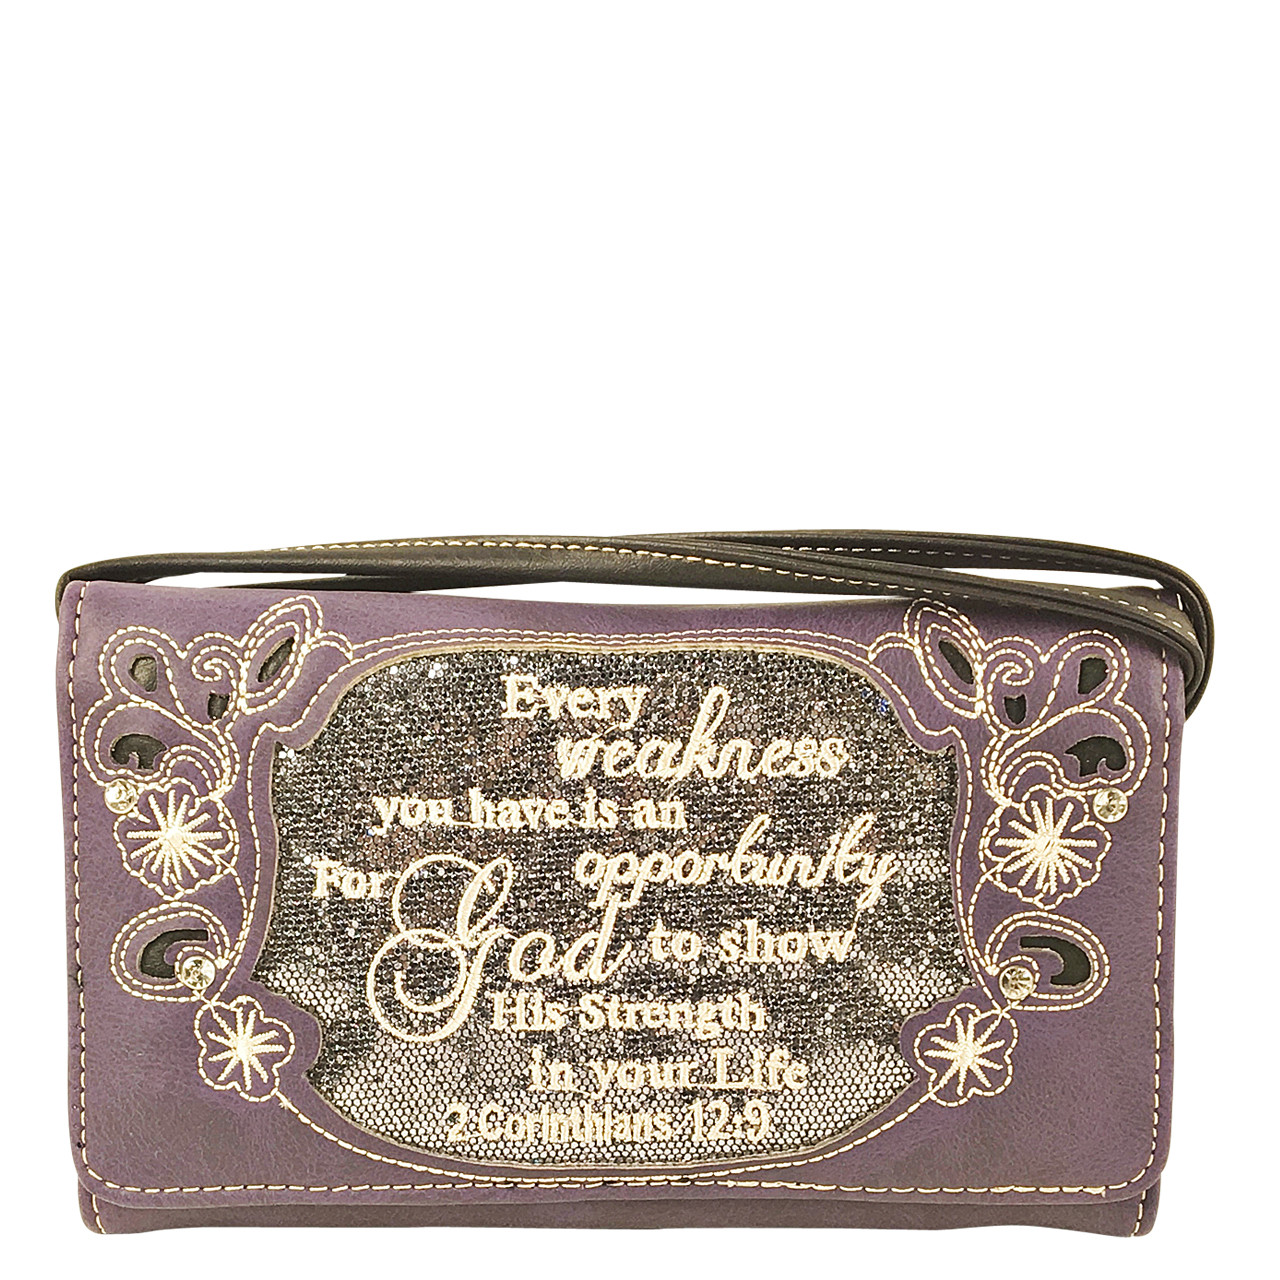 PURPLE BIBLE LIFE QUOTE RHINESTONE STUDDED LOOK CLUTCH TRIFOLD WALLET